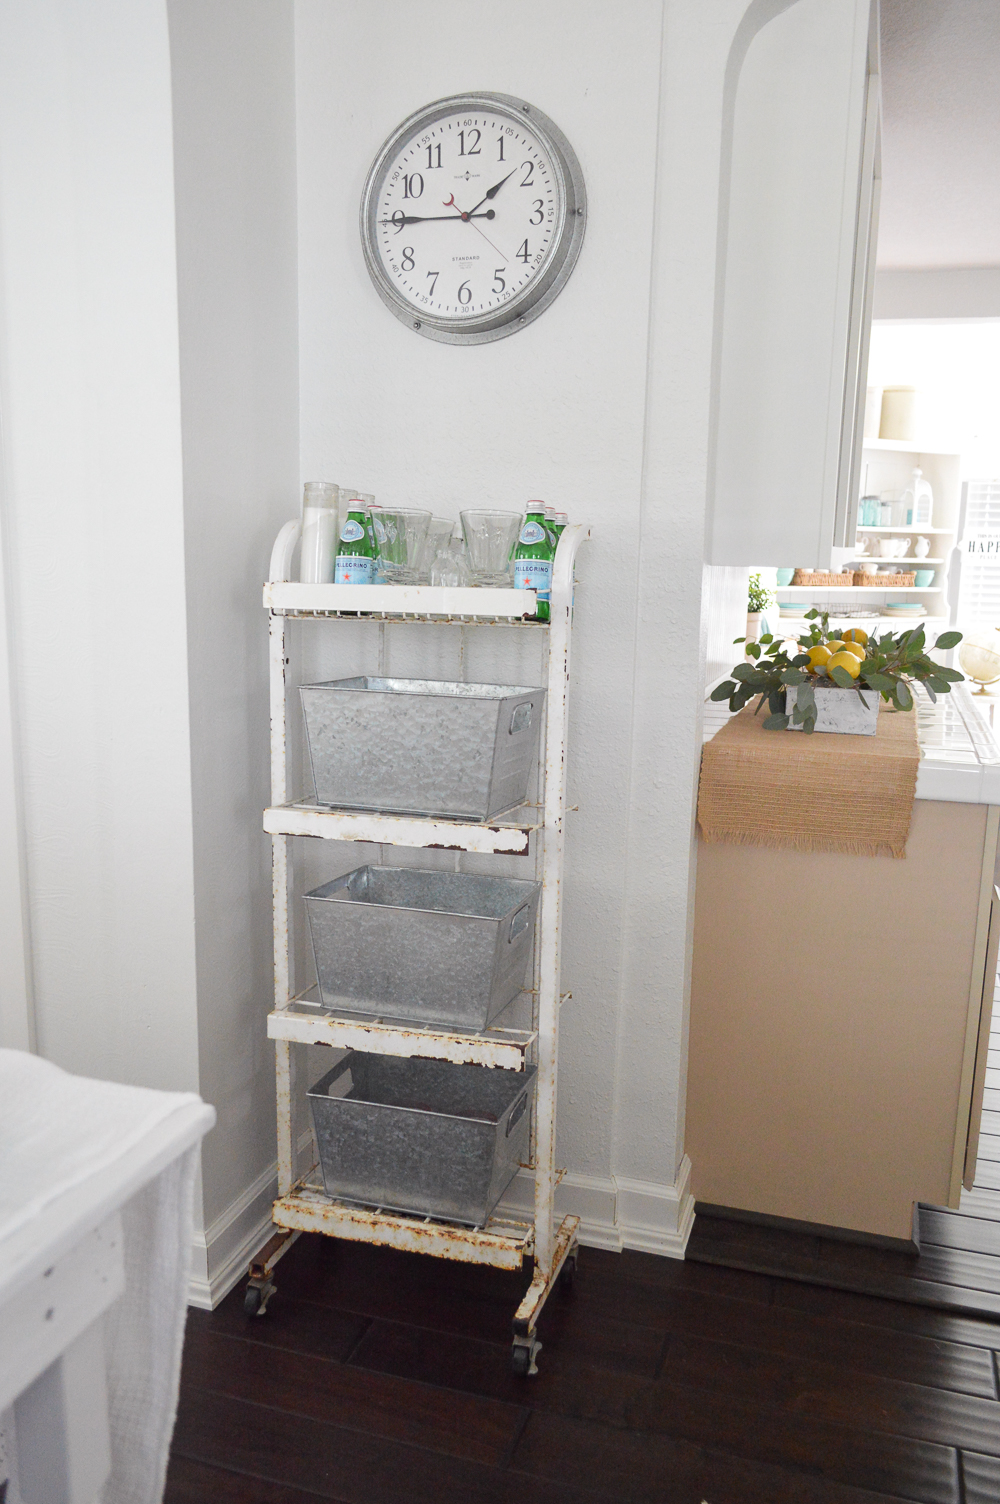 old rusty vintage store display - turned storage with galvanized bins